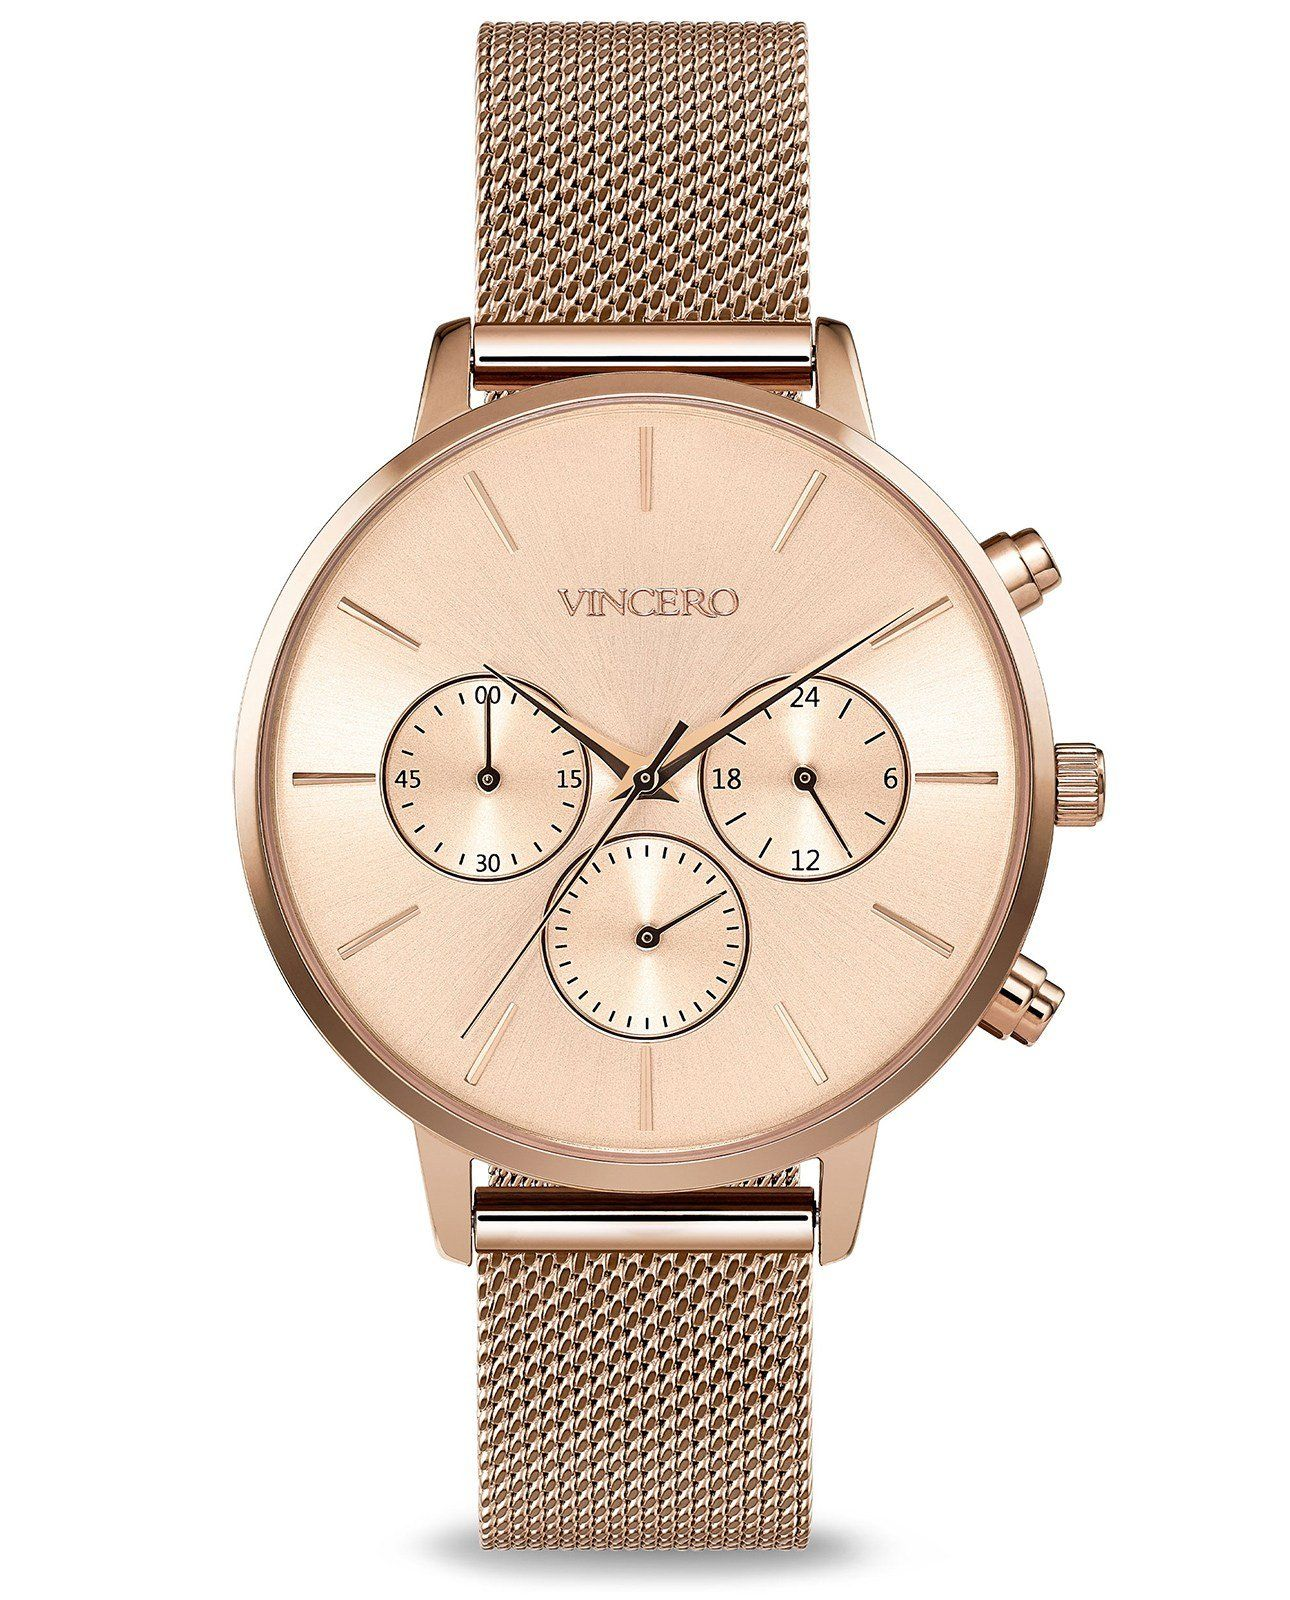 b4ae74b2e Exceptionally Crafted. Fairly Priced. – Vincero Watches | vincero ...